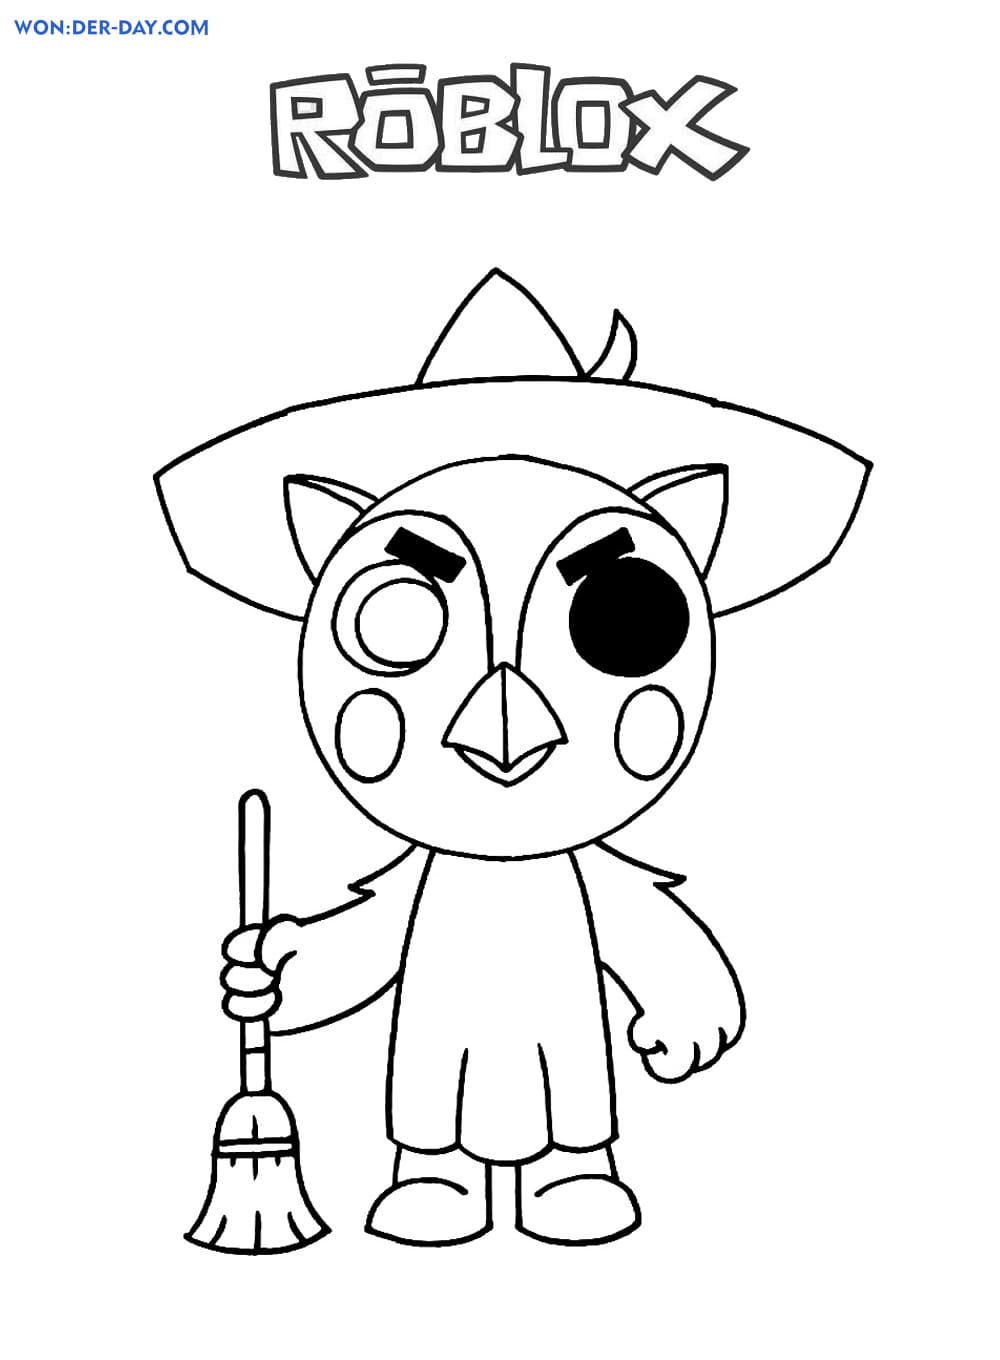 Piggy Roblox coloring pages   WONDER DAY — Coloring pages for ...